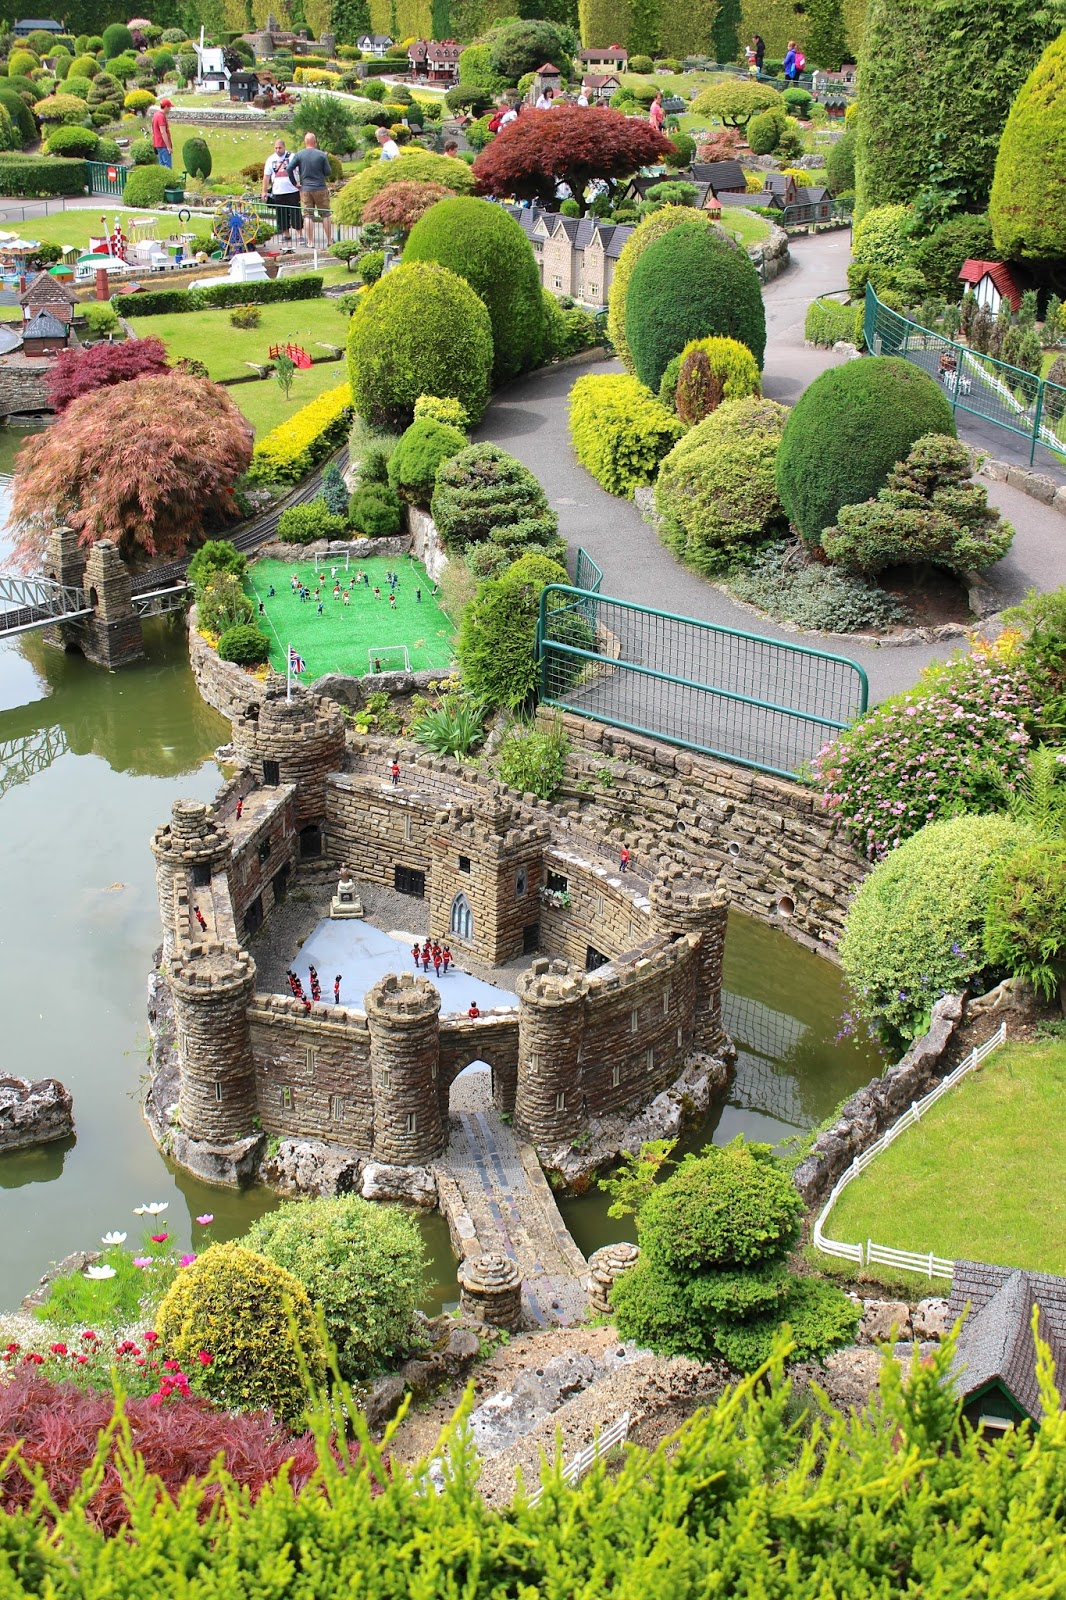 Things to do in Beaconsfield bekonscot model village